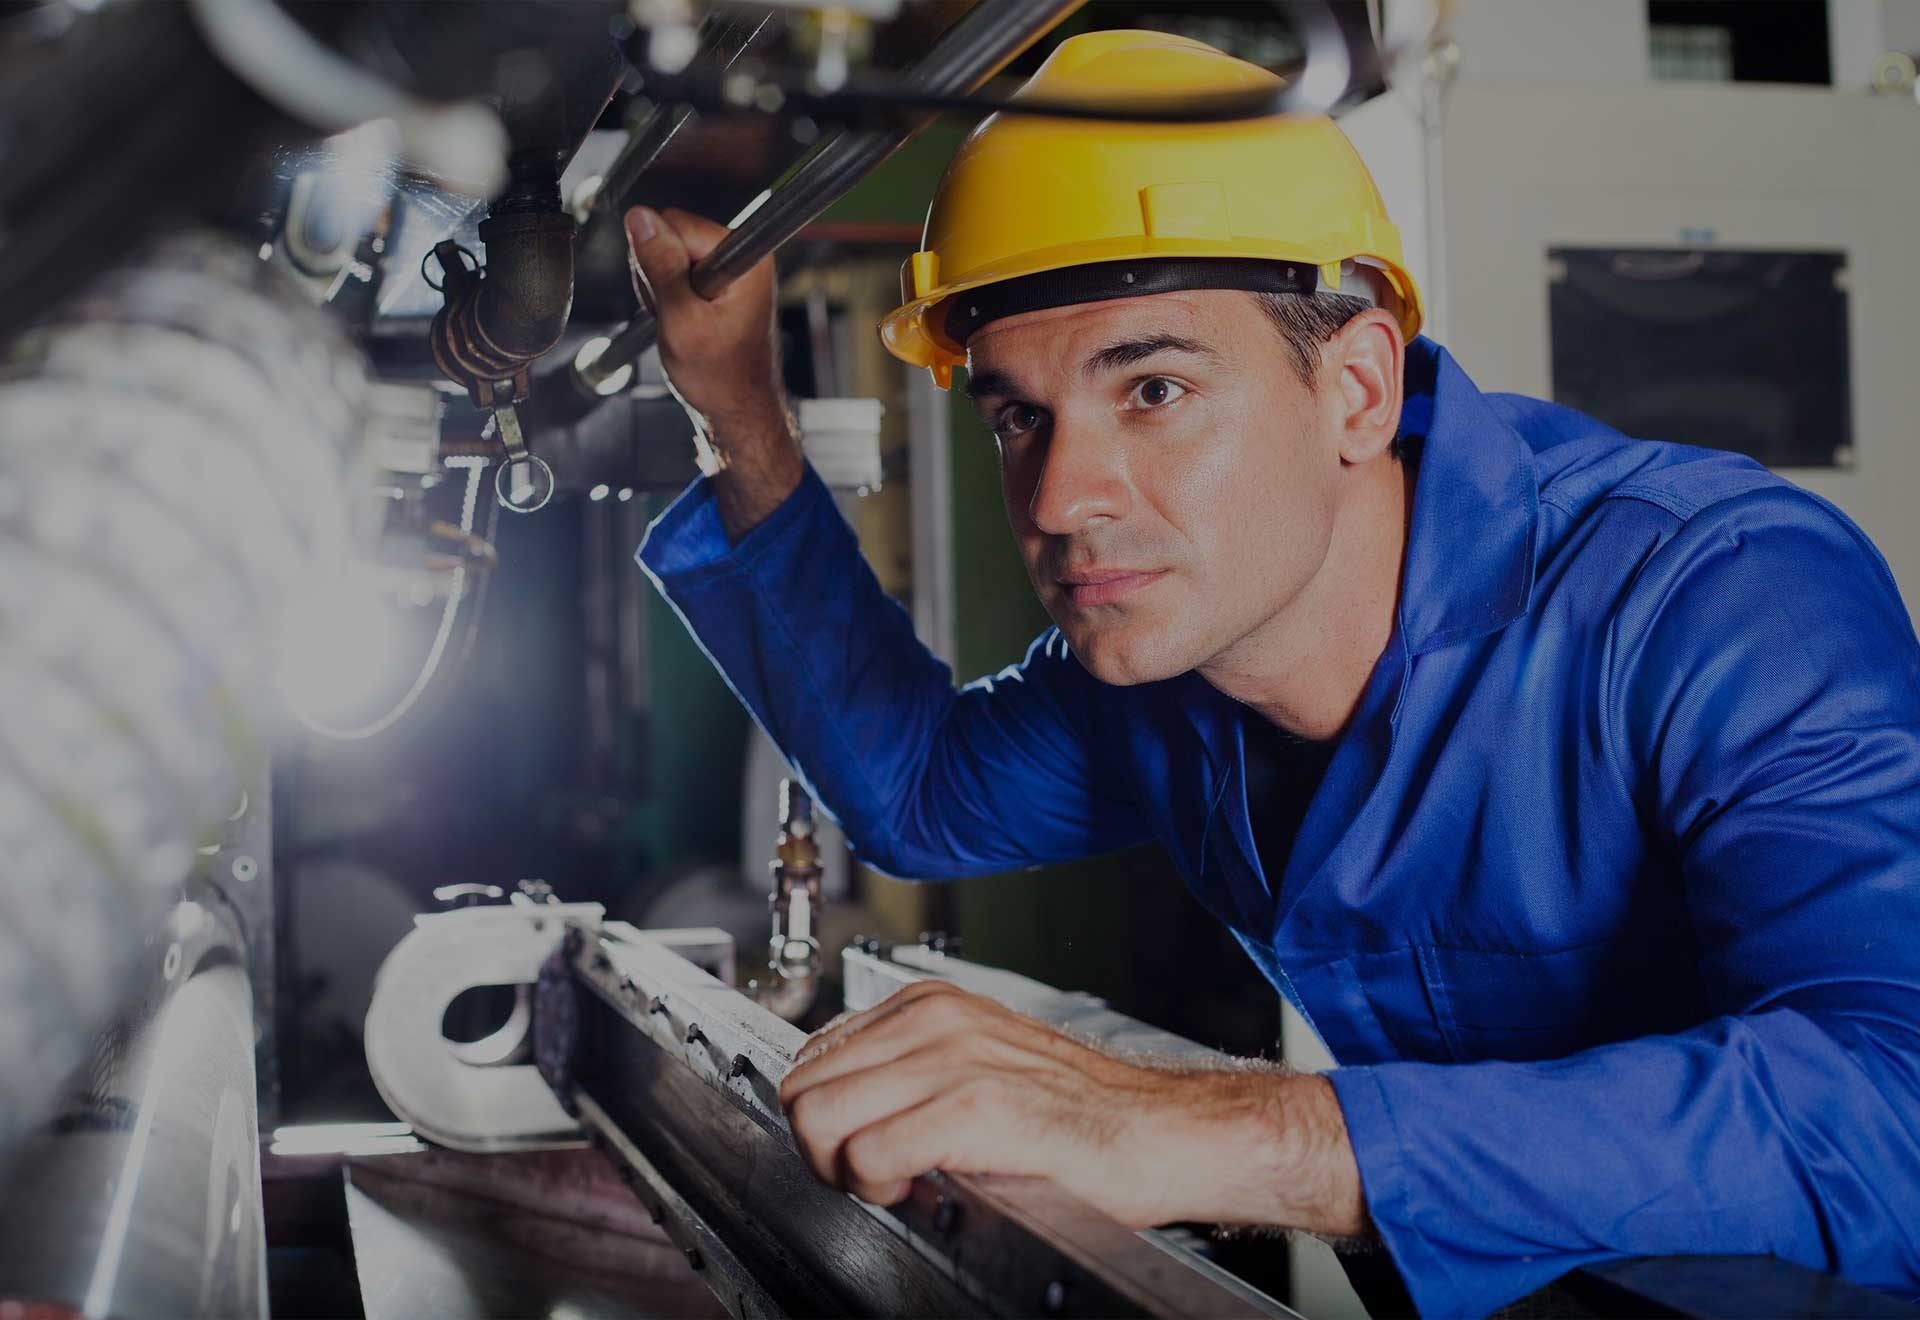 The team of Montfort technicians support all our divisions by installing, maintaining and guaranteeing our equipment.